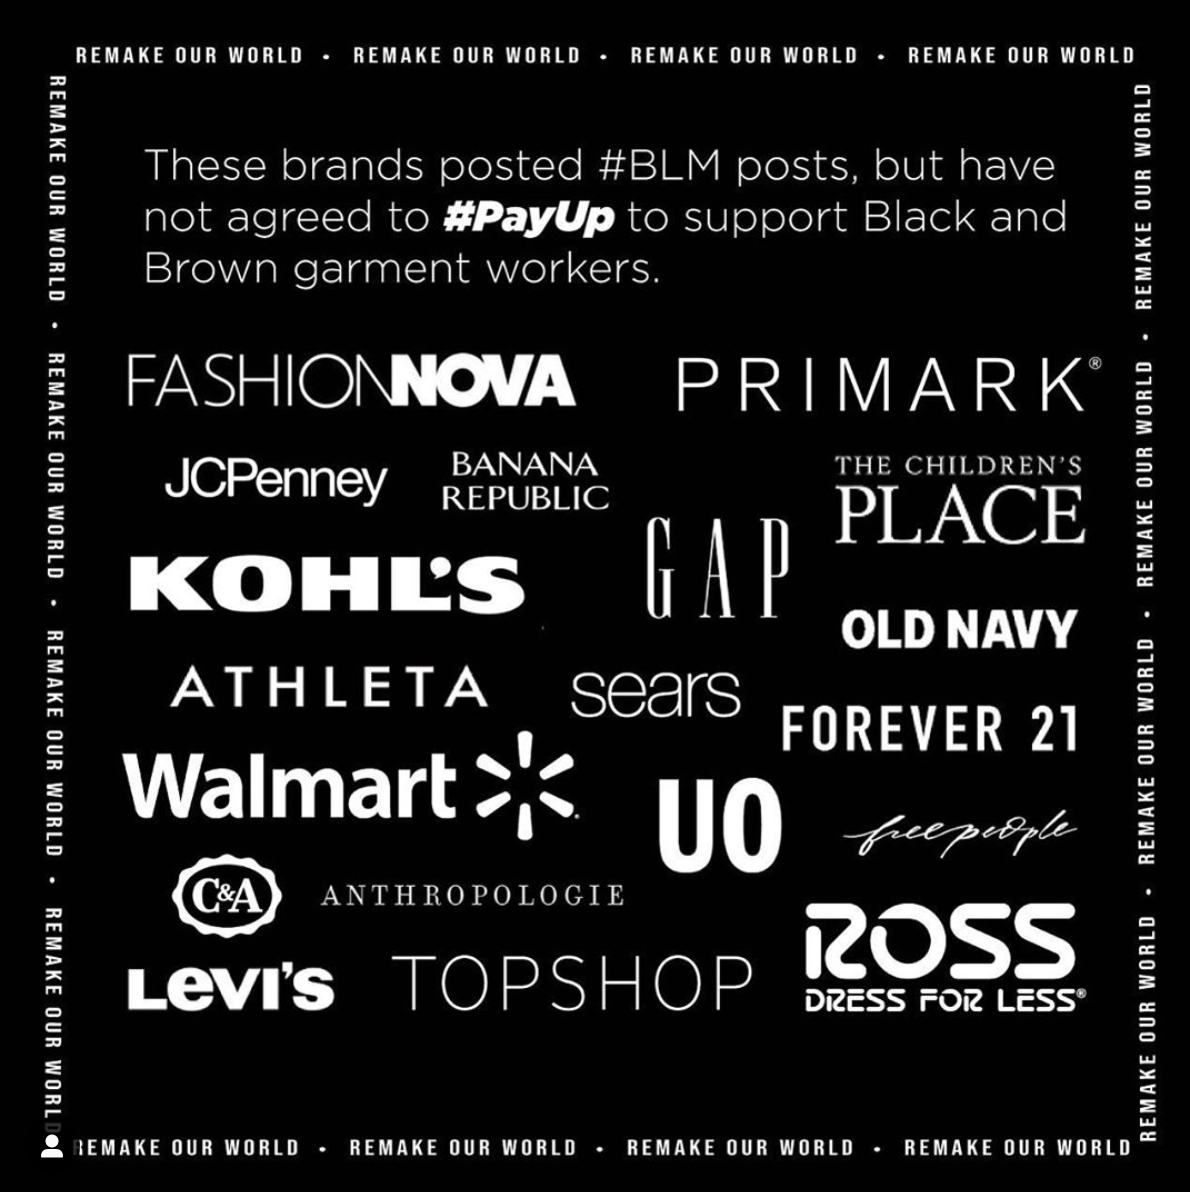 @remakeourworld post calling out fashion retailers for coopting #BLM